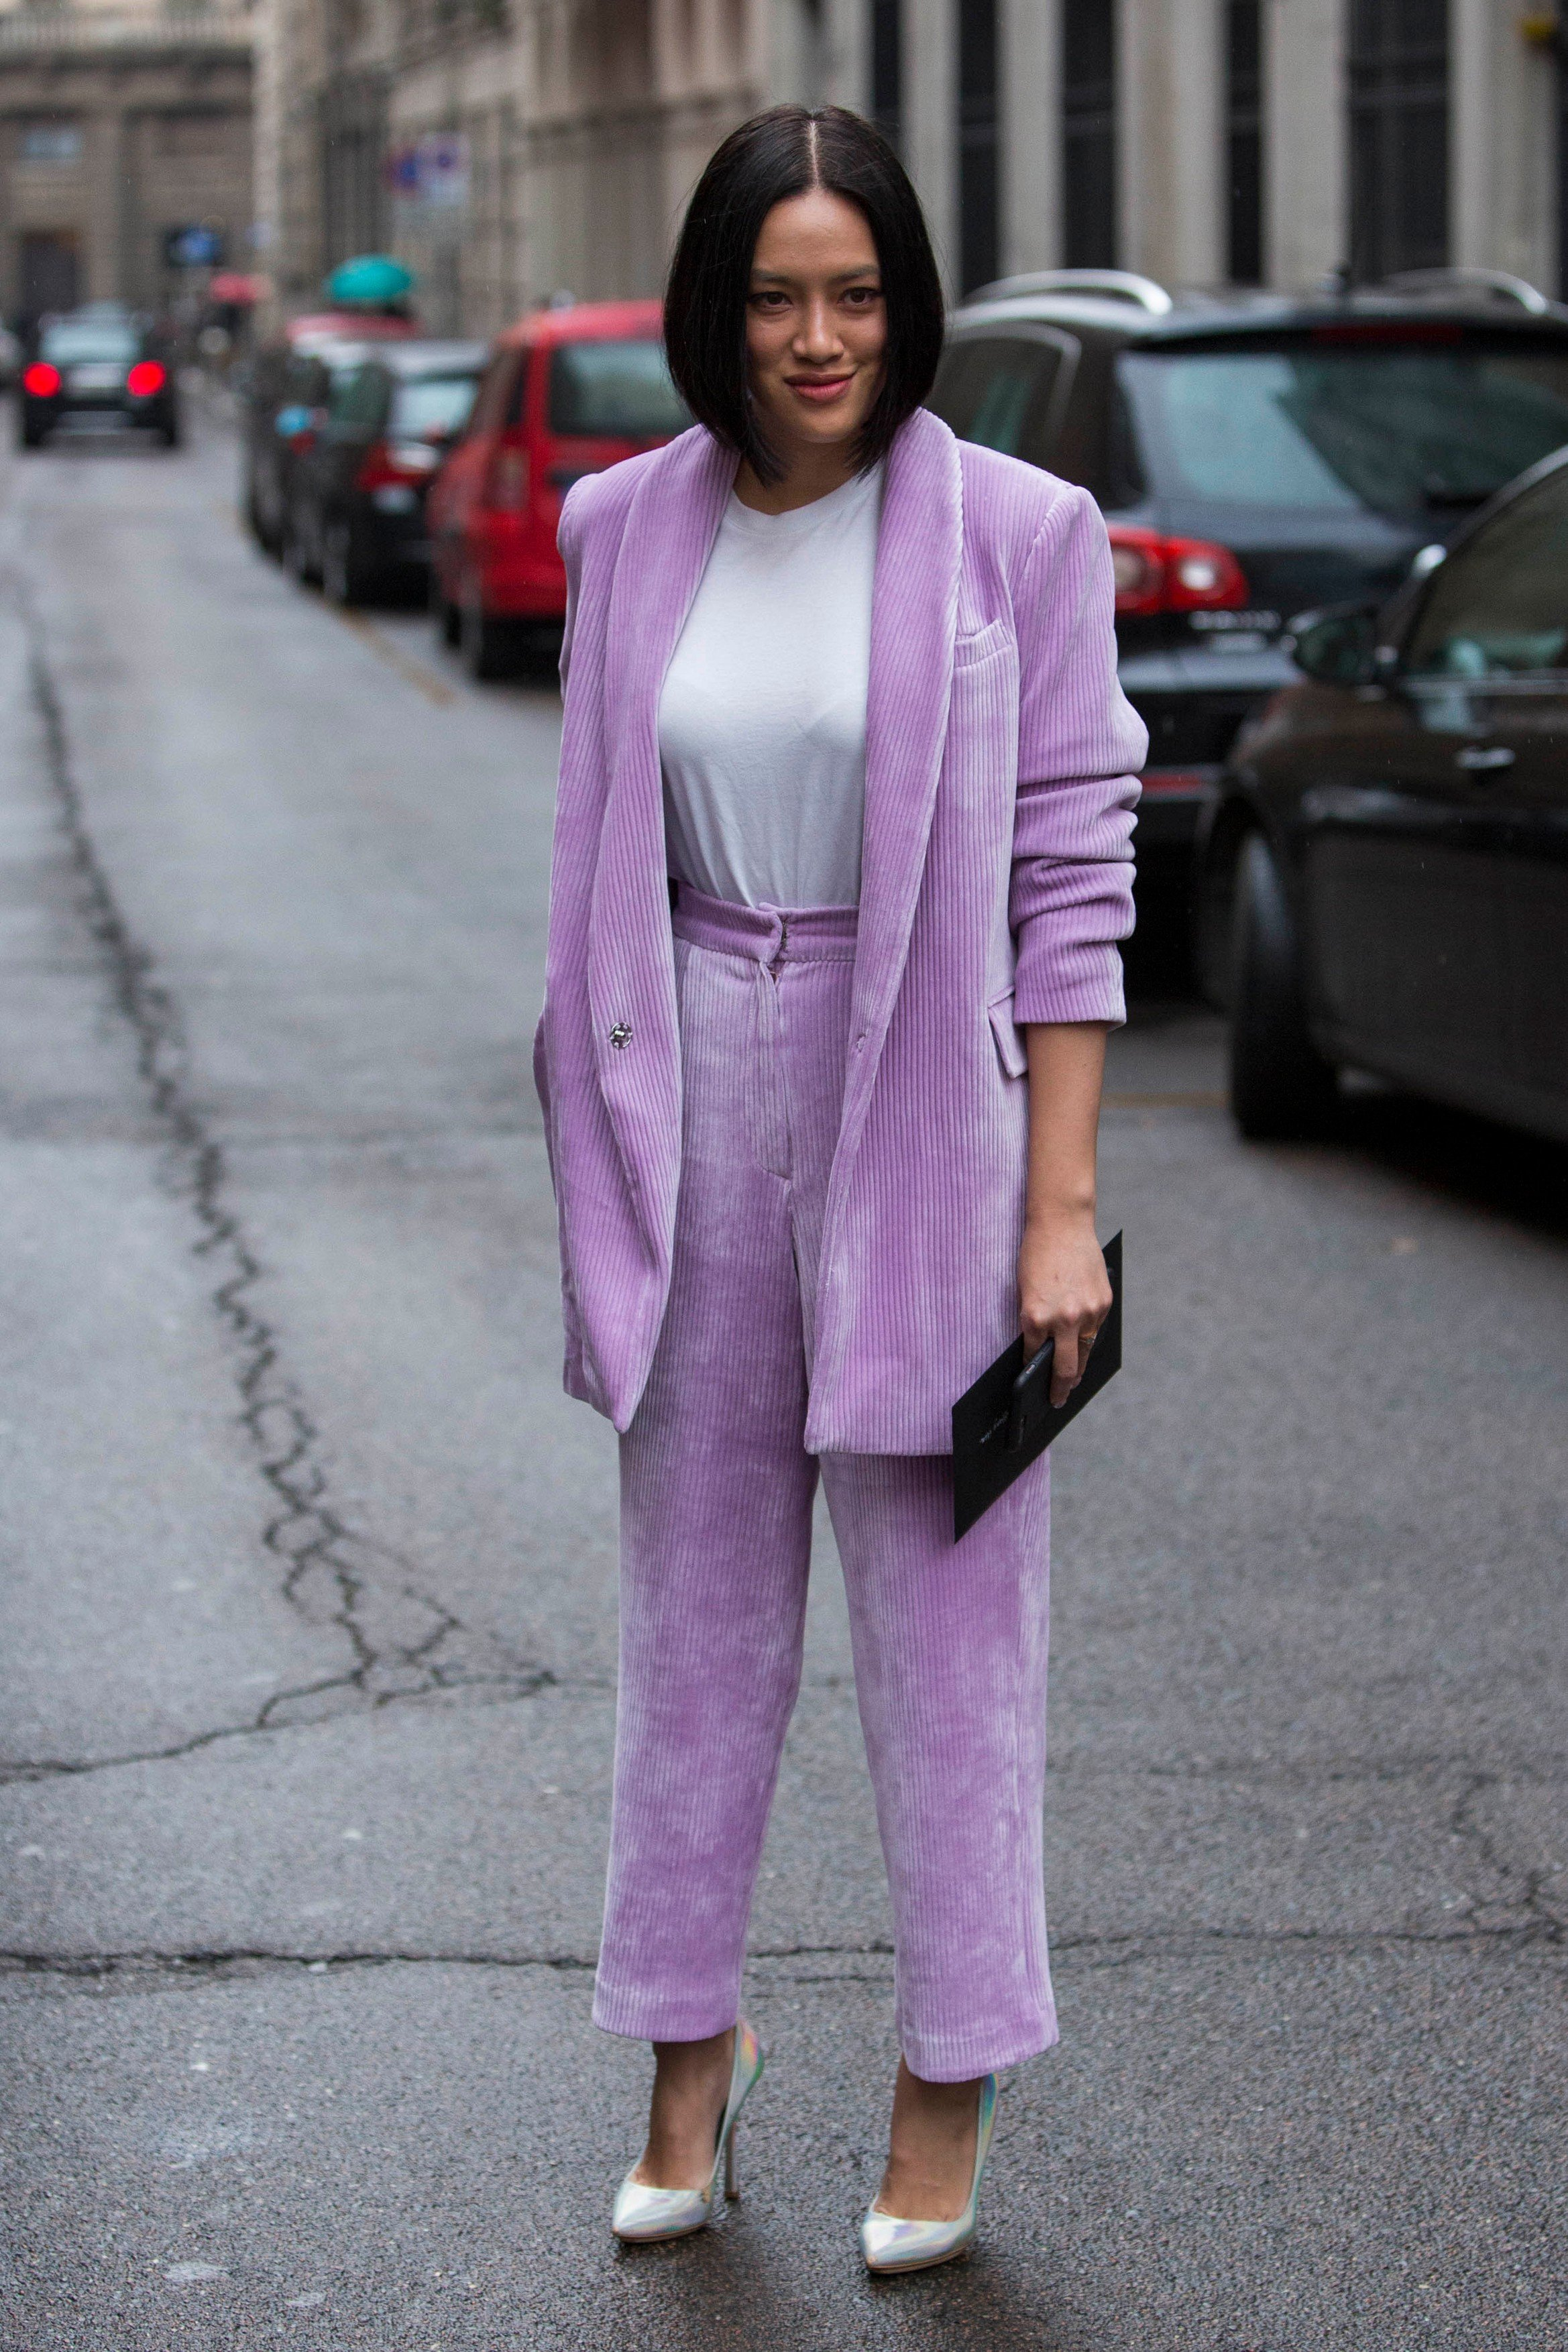 Fashion: street style at Milan Fashion Week 2018 outside of the Max Mara show in Milan on February 22, 2018. 22 Feb 2018, Image: 364096962, License: Rights-managed, Restrictions: World Rights, Model Release: no, Credit line: Profimedia, Mega Agency